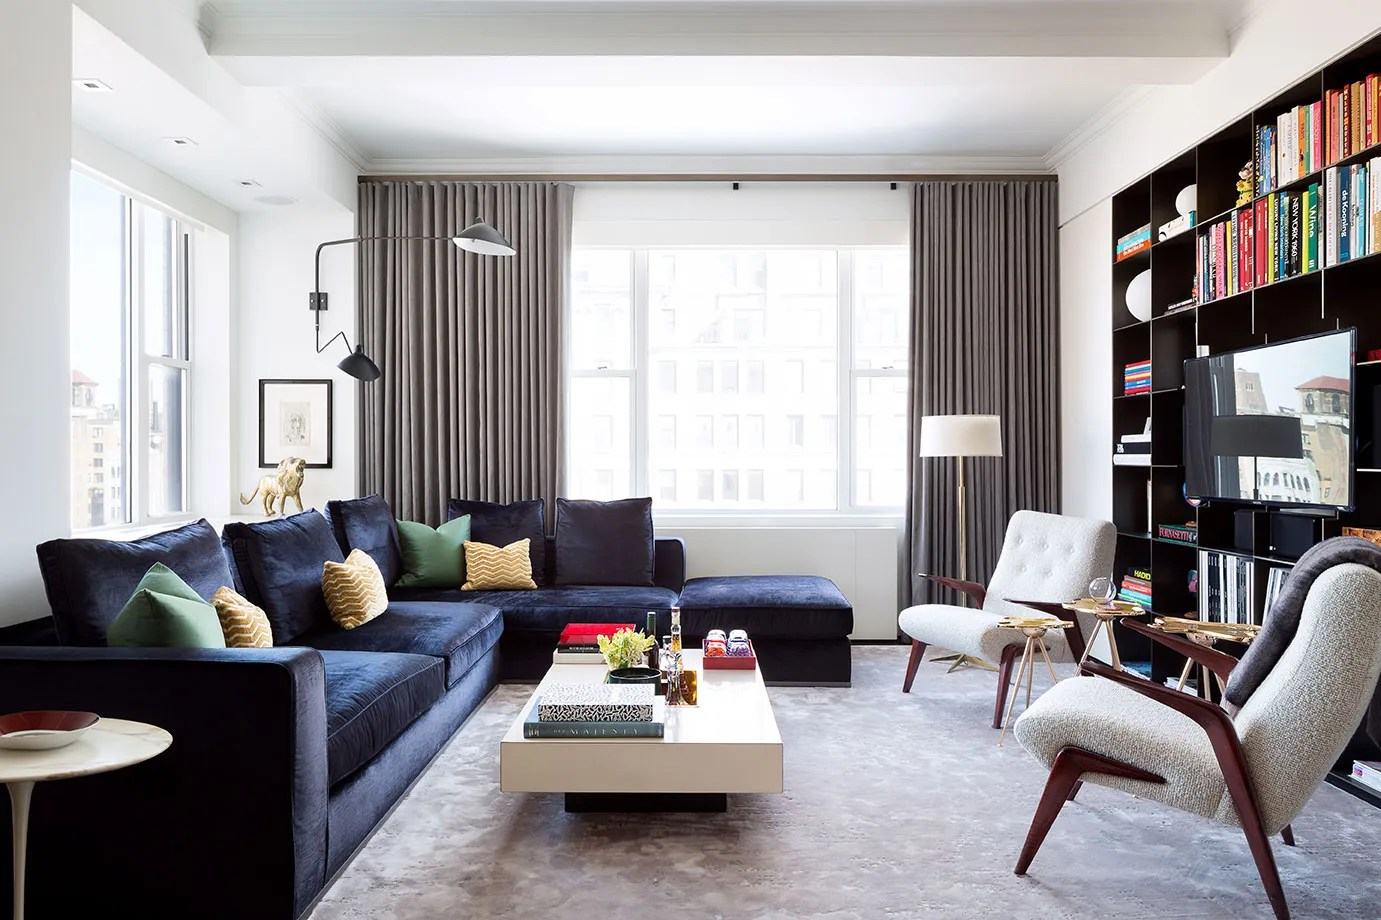 See more ideas about apartment living, apartment decor, small apartments. Tour a Redesigned Prewar New York Apartment